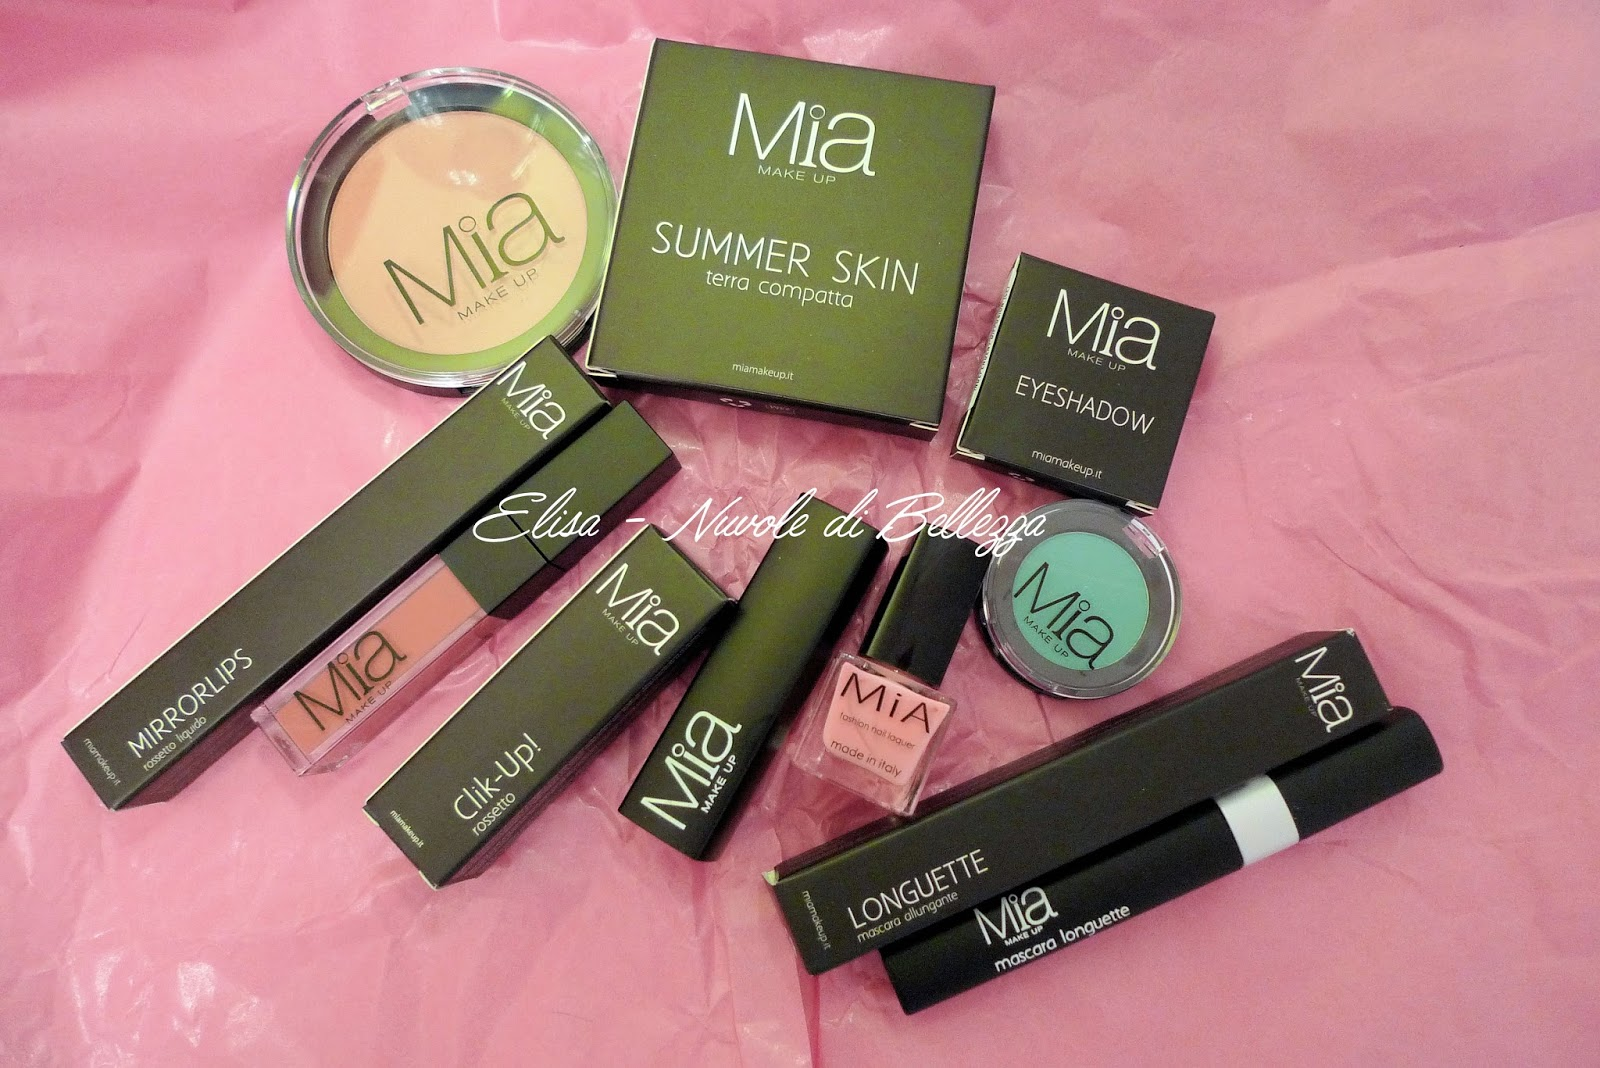 Mia Make Up - Recensione Terra Summer Kiss, Ombretto Mat, Mascara Longuette, Rossetto Mirrirlips, Rossetto Click Up, Smalto